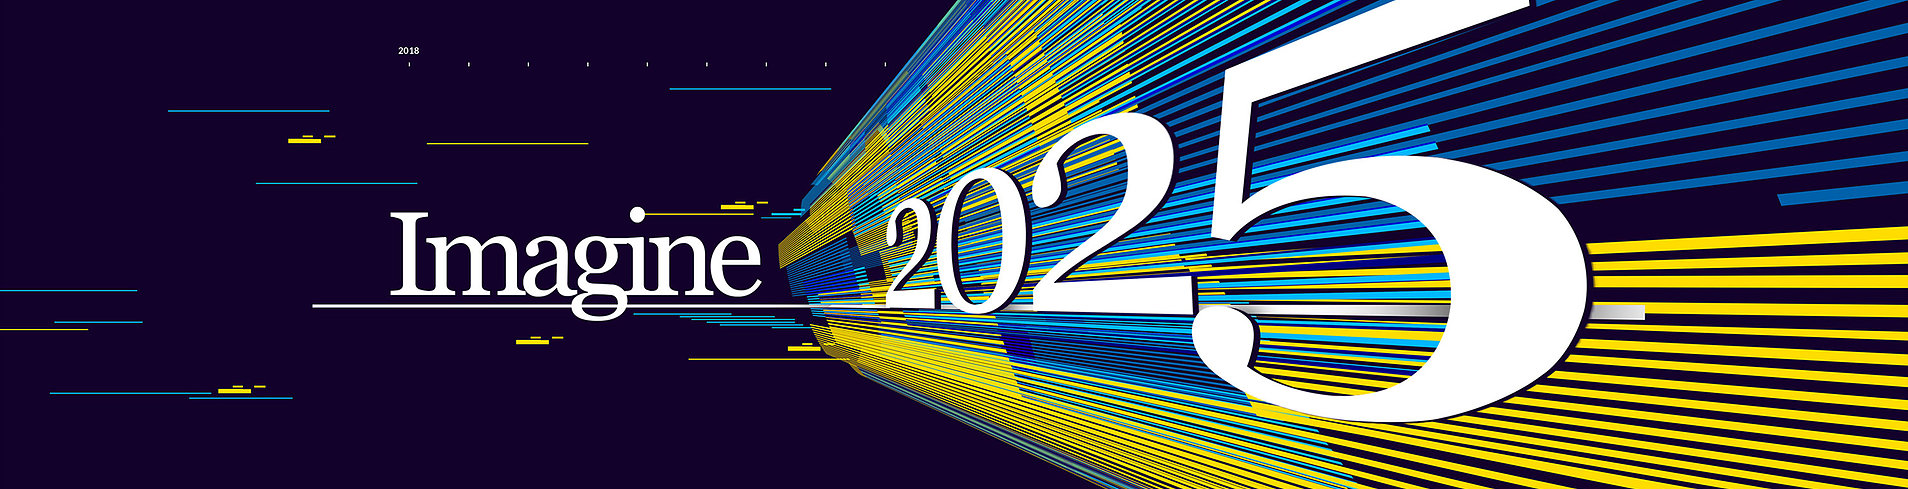 Fast Forward to the Future: Welcome to Imagine 2025, a unique perspective on the forces of change shaping tomorrow's world today